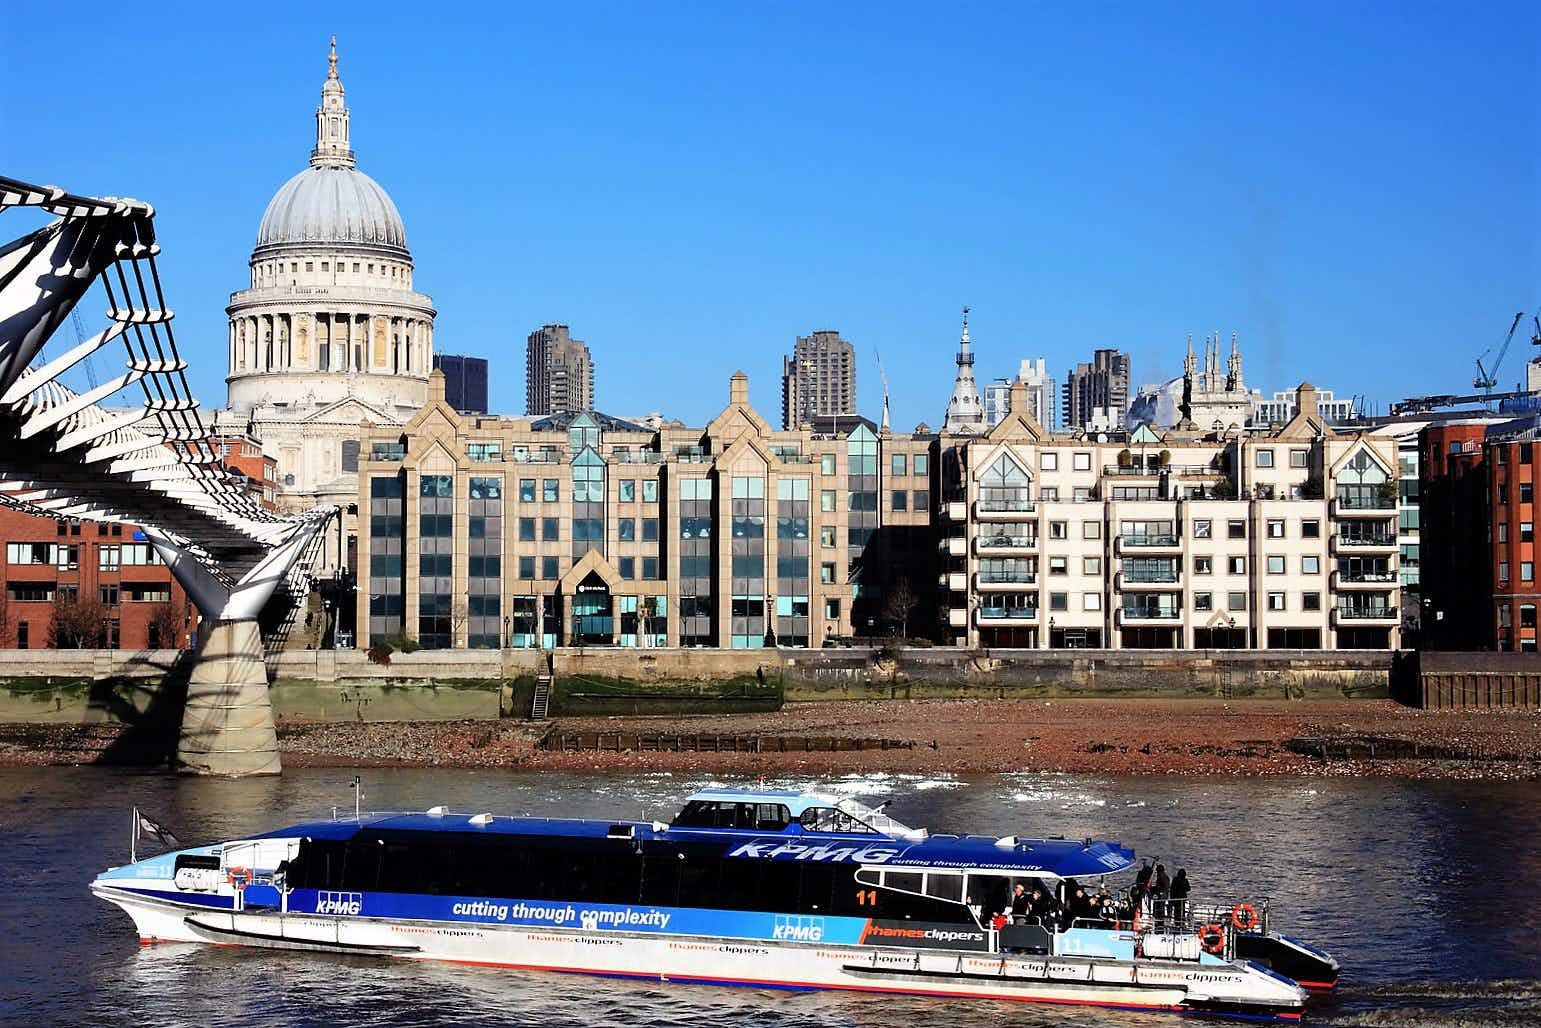 London has become more accessible for visitors with disabilities in recent years with sights, like St Paul's, and transport, like the Thames Clippers, making improvements © Tony Baggett / Getty Images